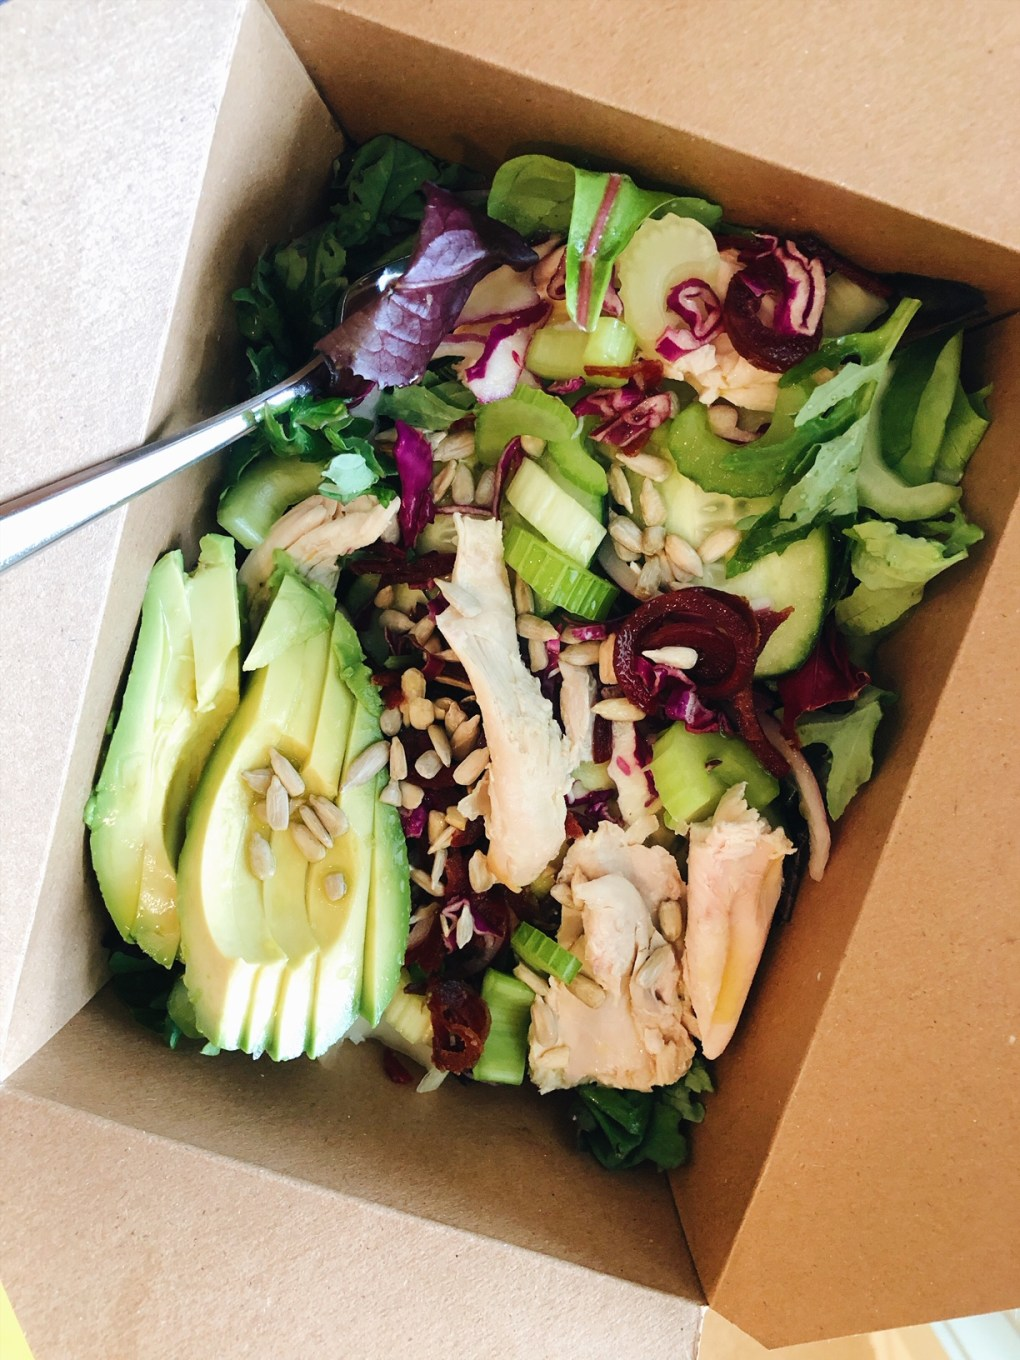 Salad in a to go container from Whole Foods with greens, celery, cabbage, beets, sunflower seeds, avocado, and chicken